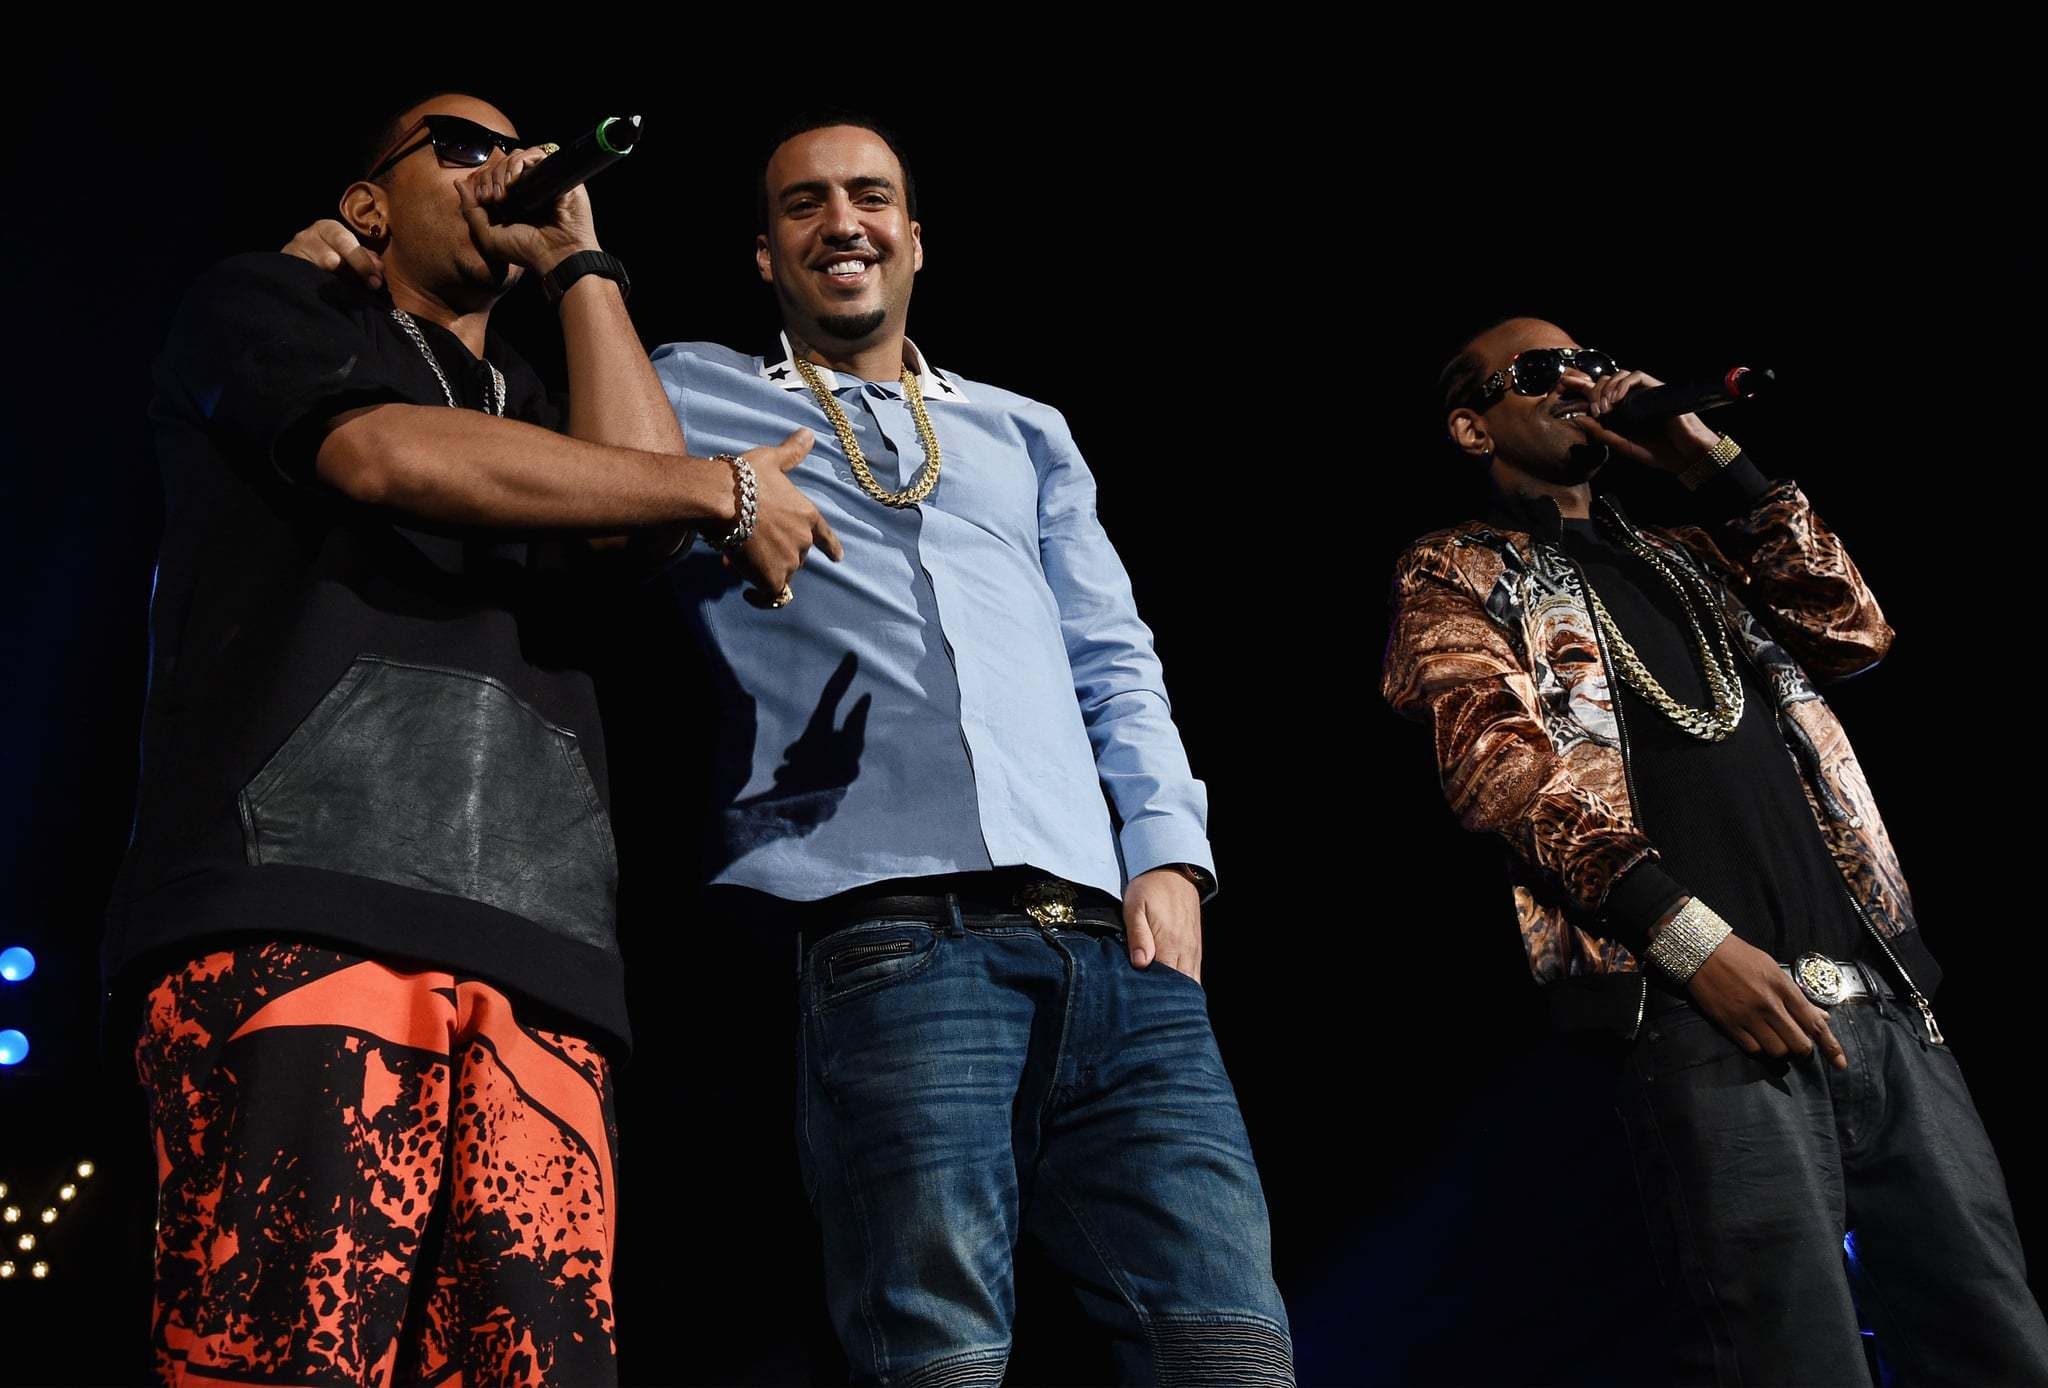 french montana wallpaper,performance,entertainment,music artist,performing arts,music